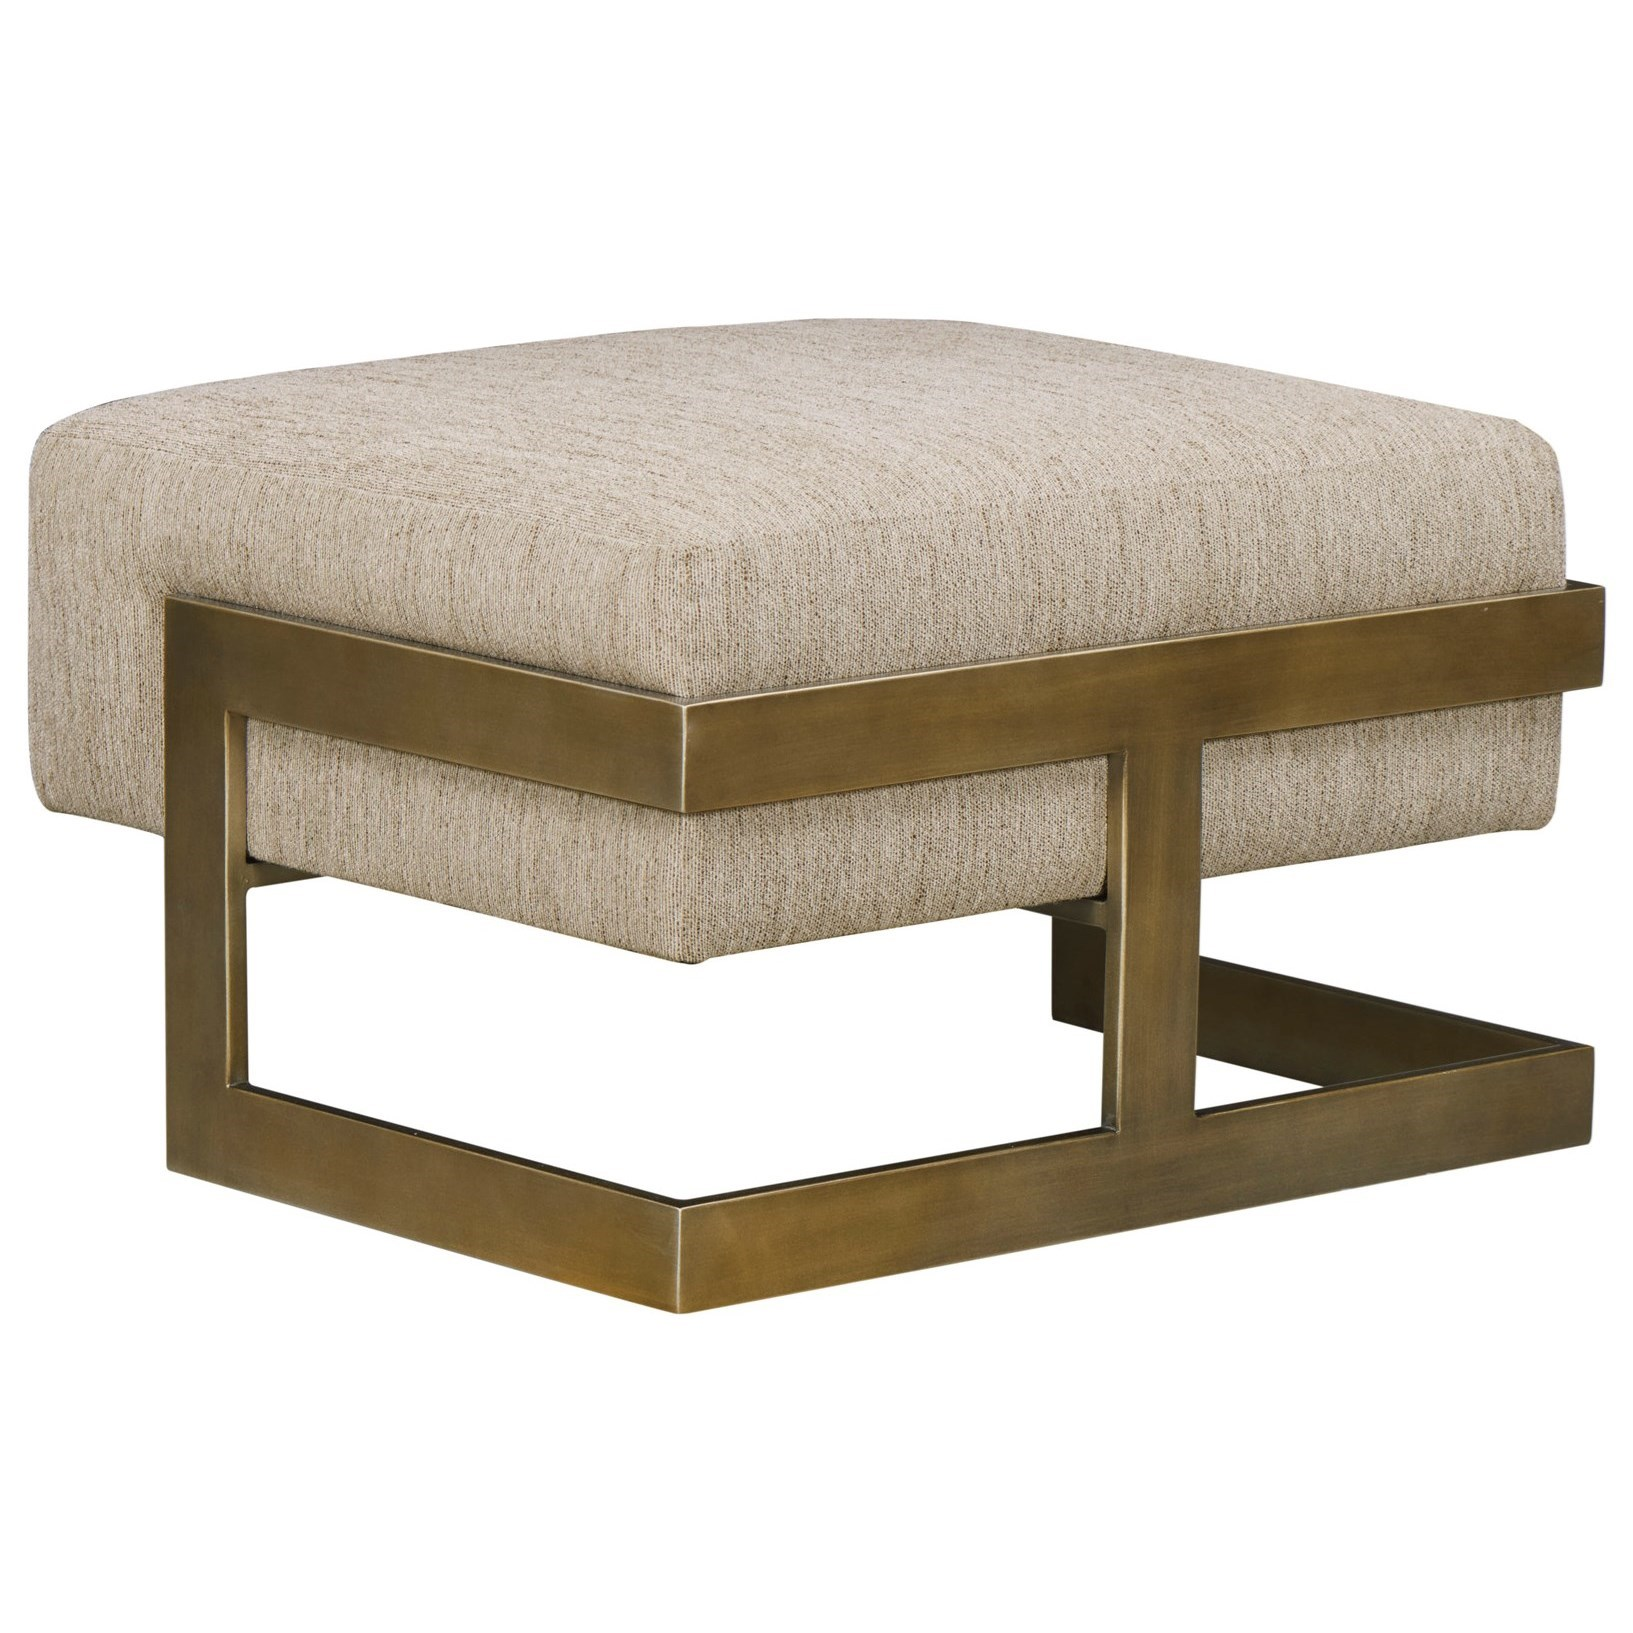 WoodWright Upholstery Ottoman by Klien Furniture at Sprintz Furniture